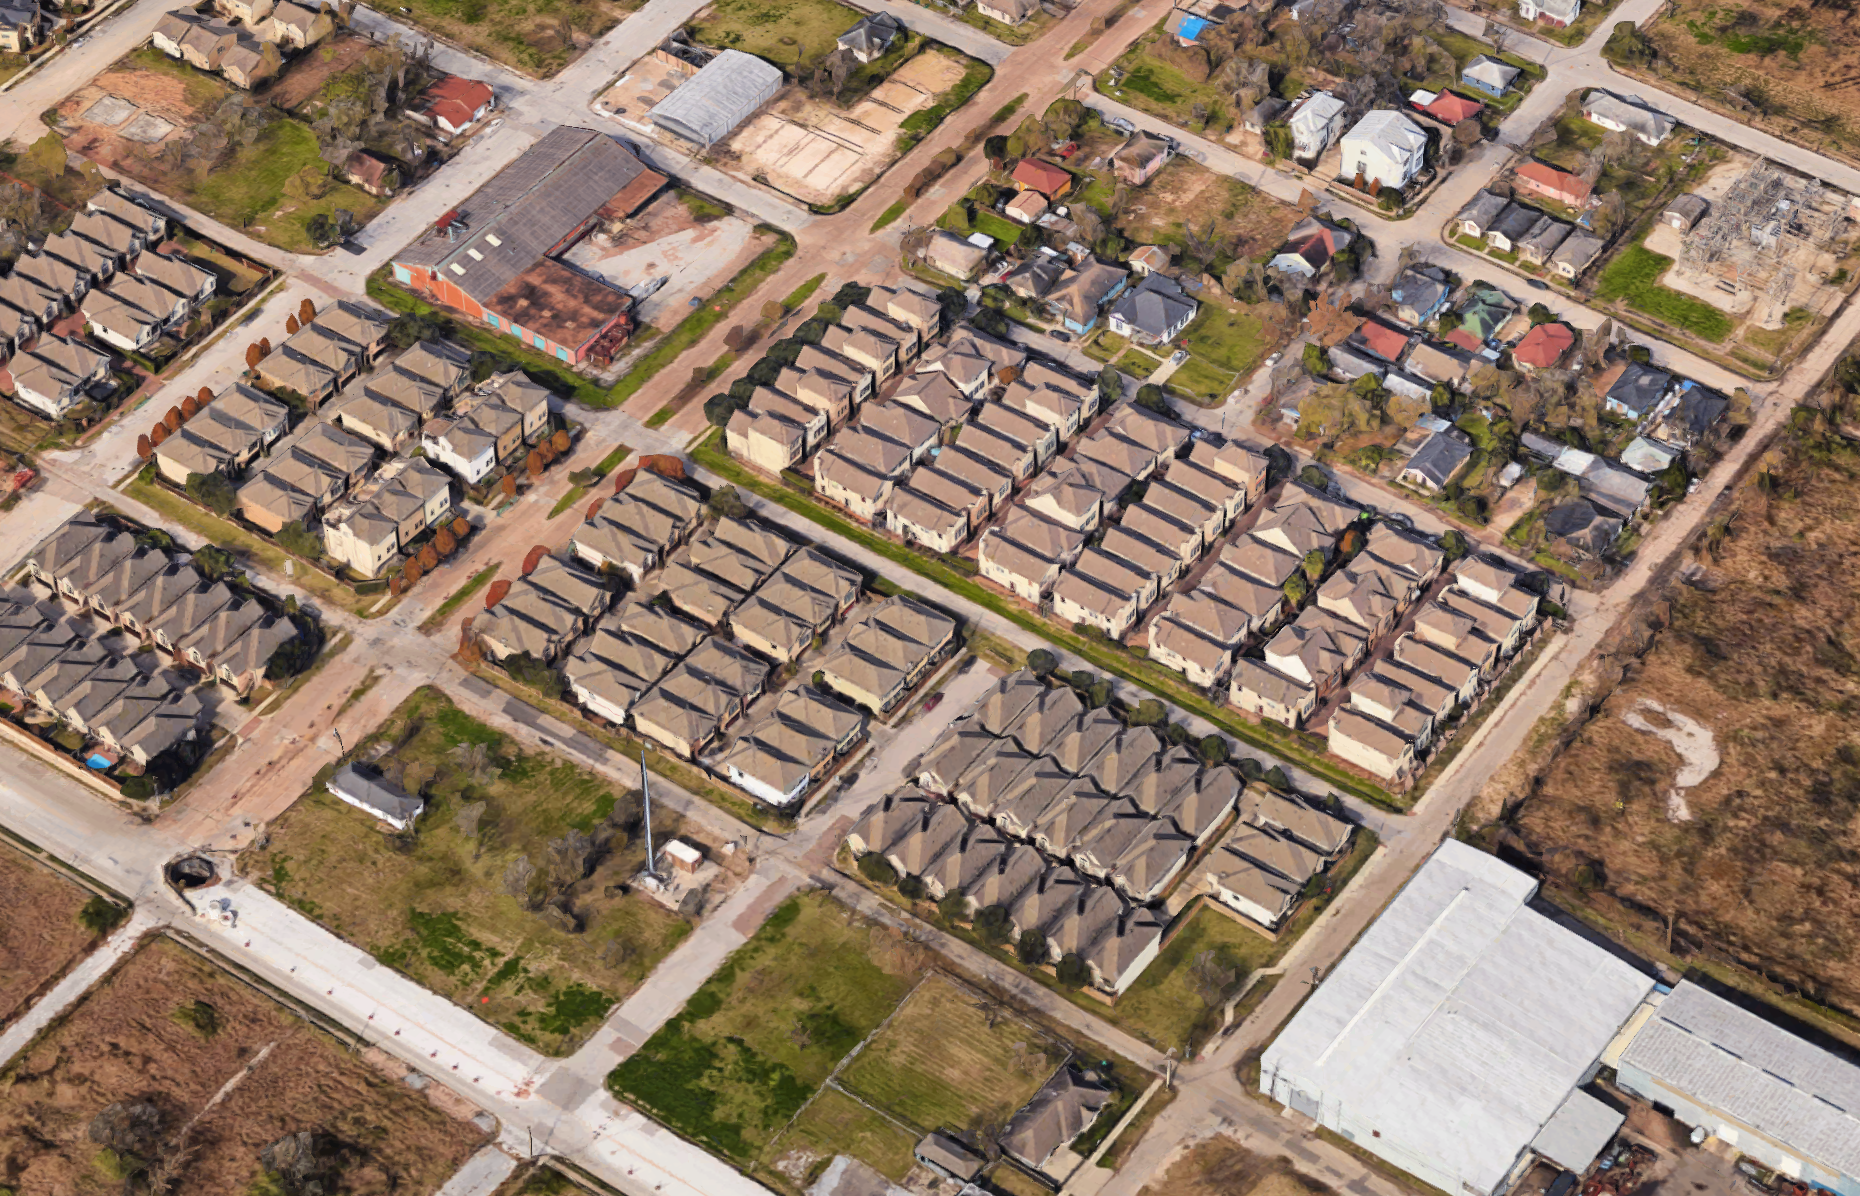 A cluster of homes without yards.